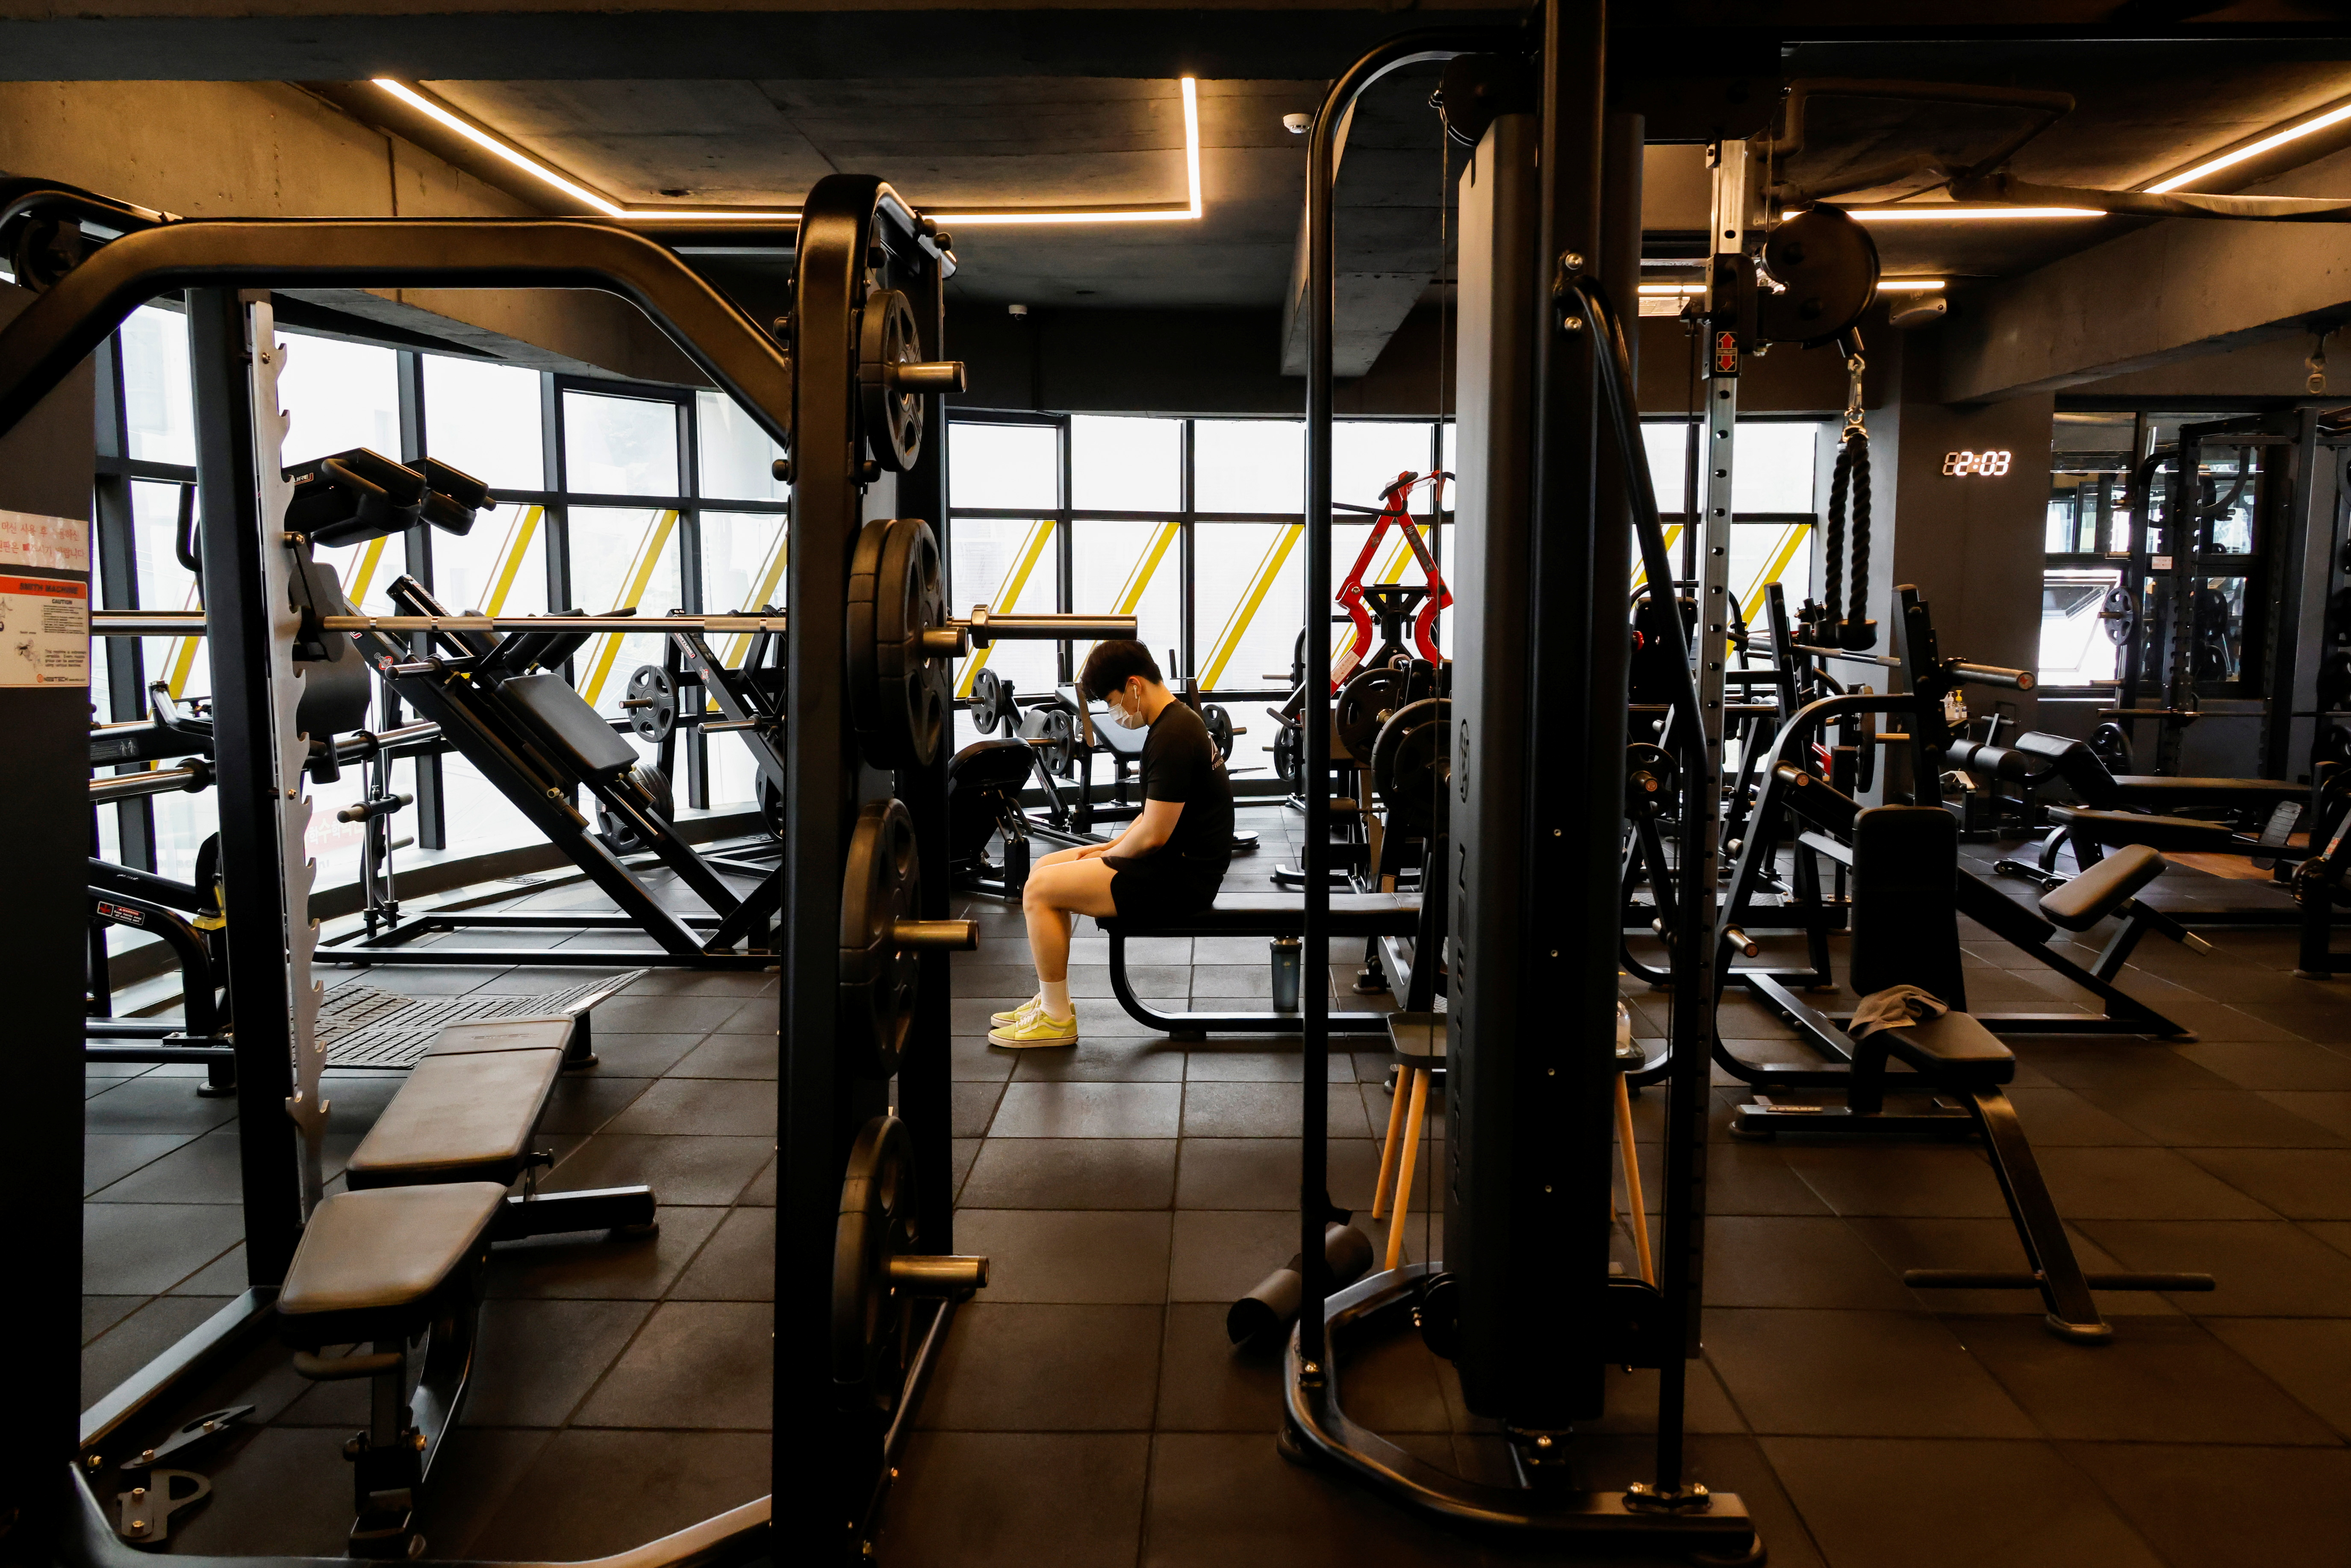 A gym member practices in a fitness club amid the coronavirus disease (COVID-19) pandemic in Seoul, South Korea, July 12, 2021. REUTERS/Heo Ran